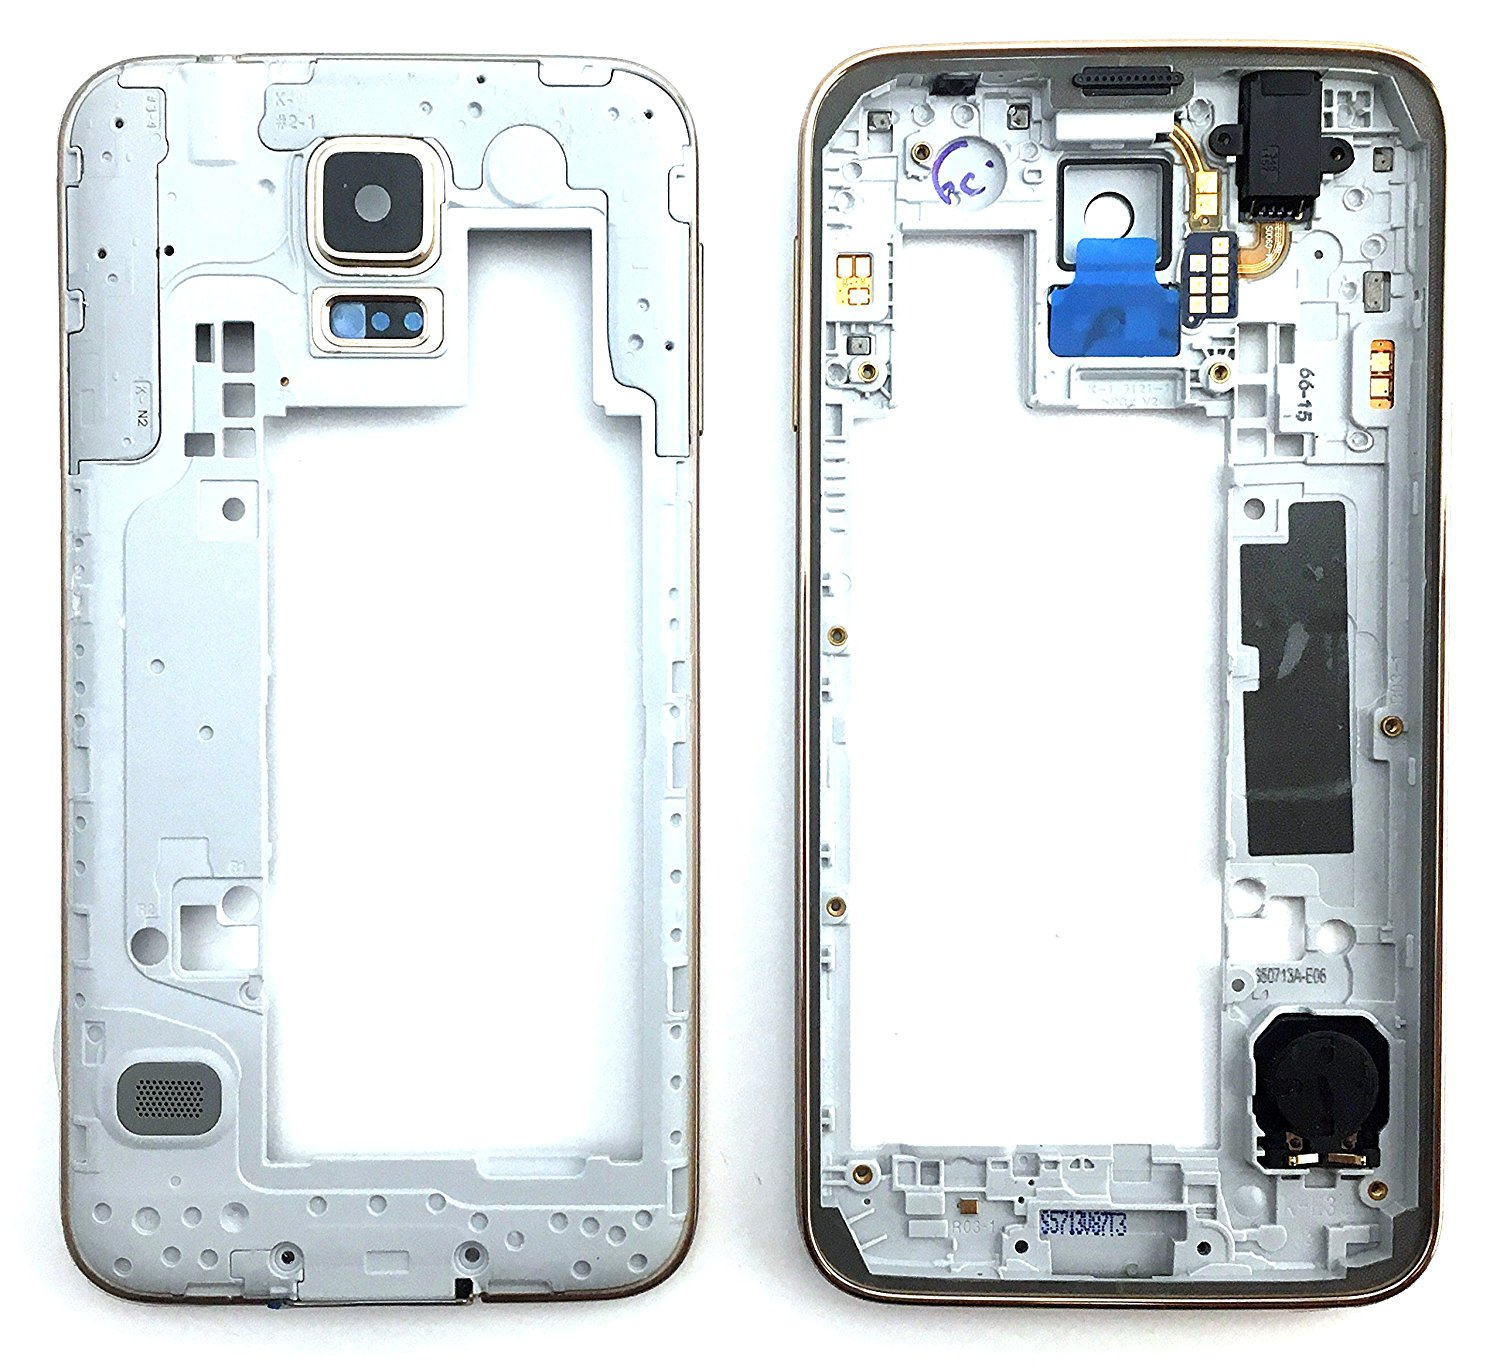 9557284c7d11 Get Quotations · SBOS Gold Housing Frame Bezel Camera Panel Replacement  Part Audio Jack Speaker Samsung Galaxy S5 G900f